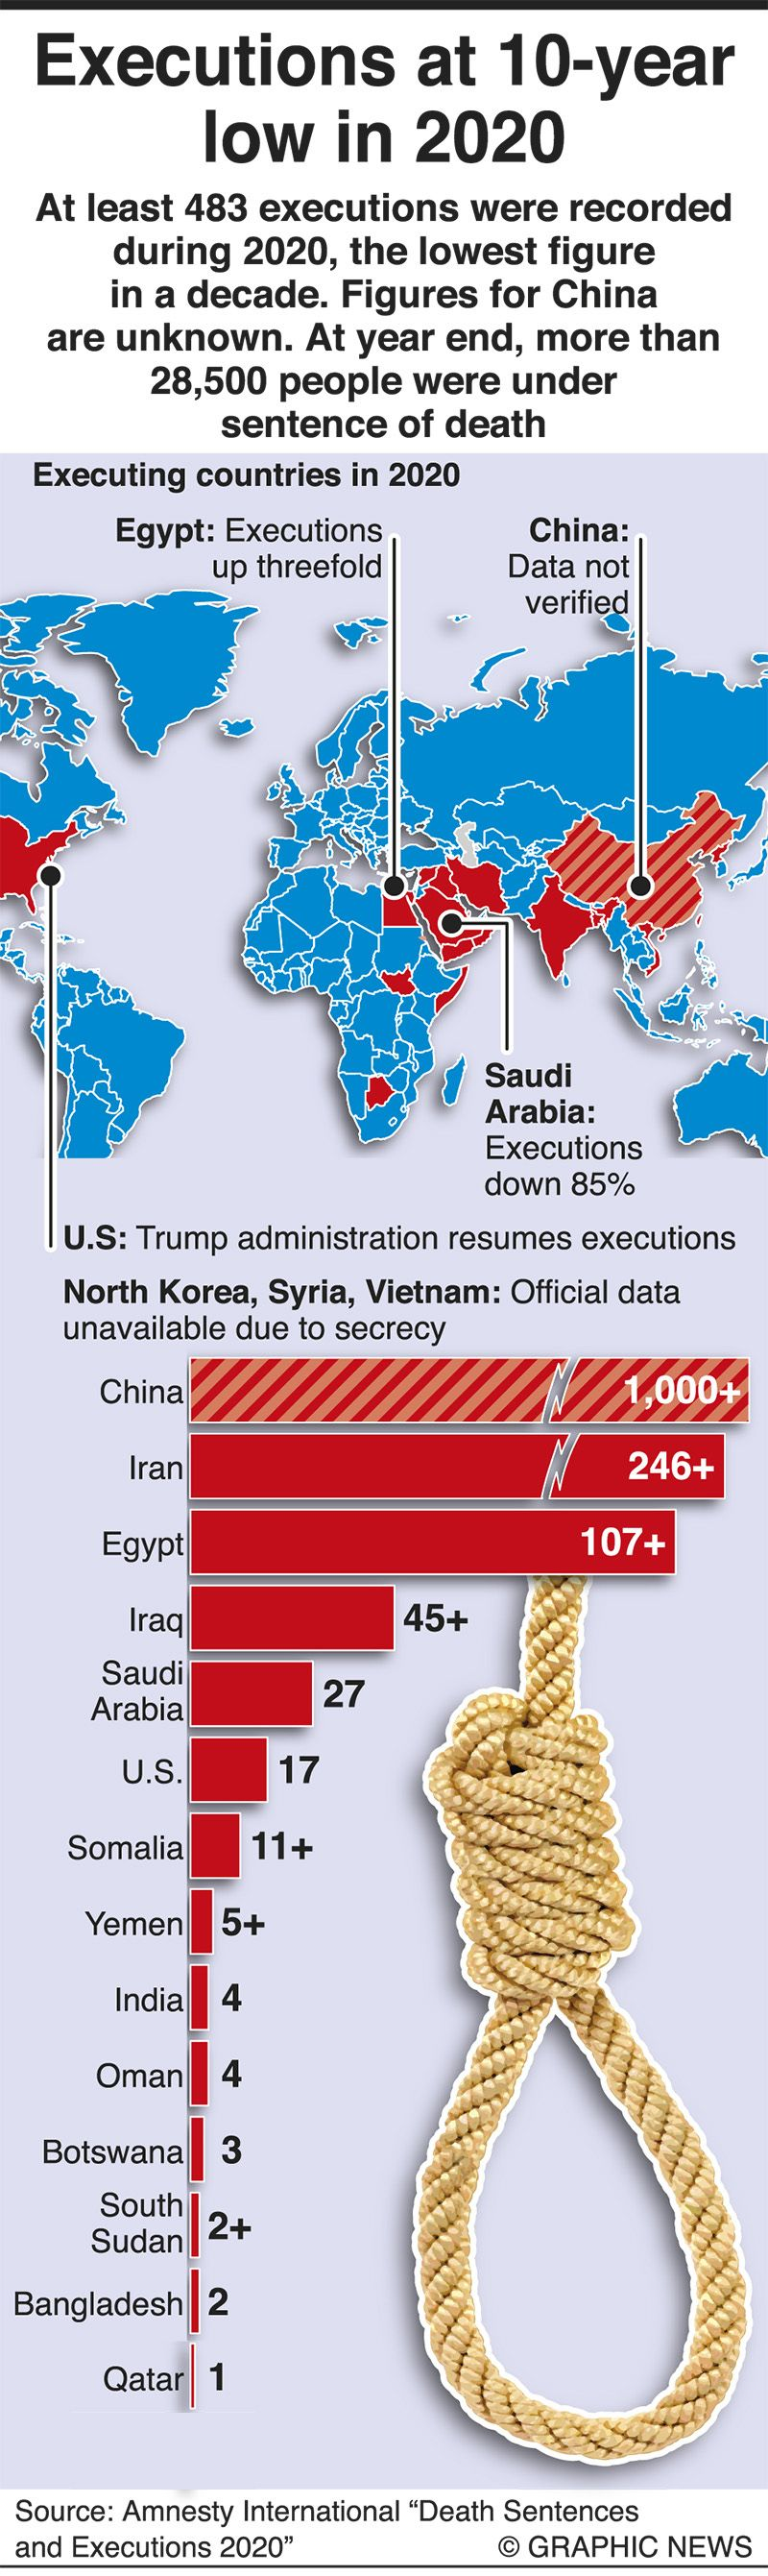 Executions at a 10-year low in 2020